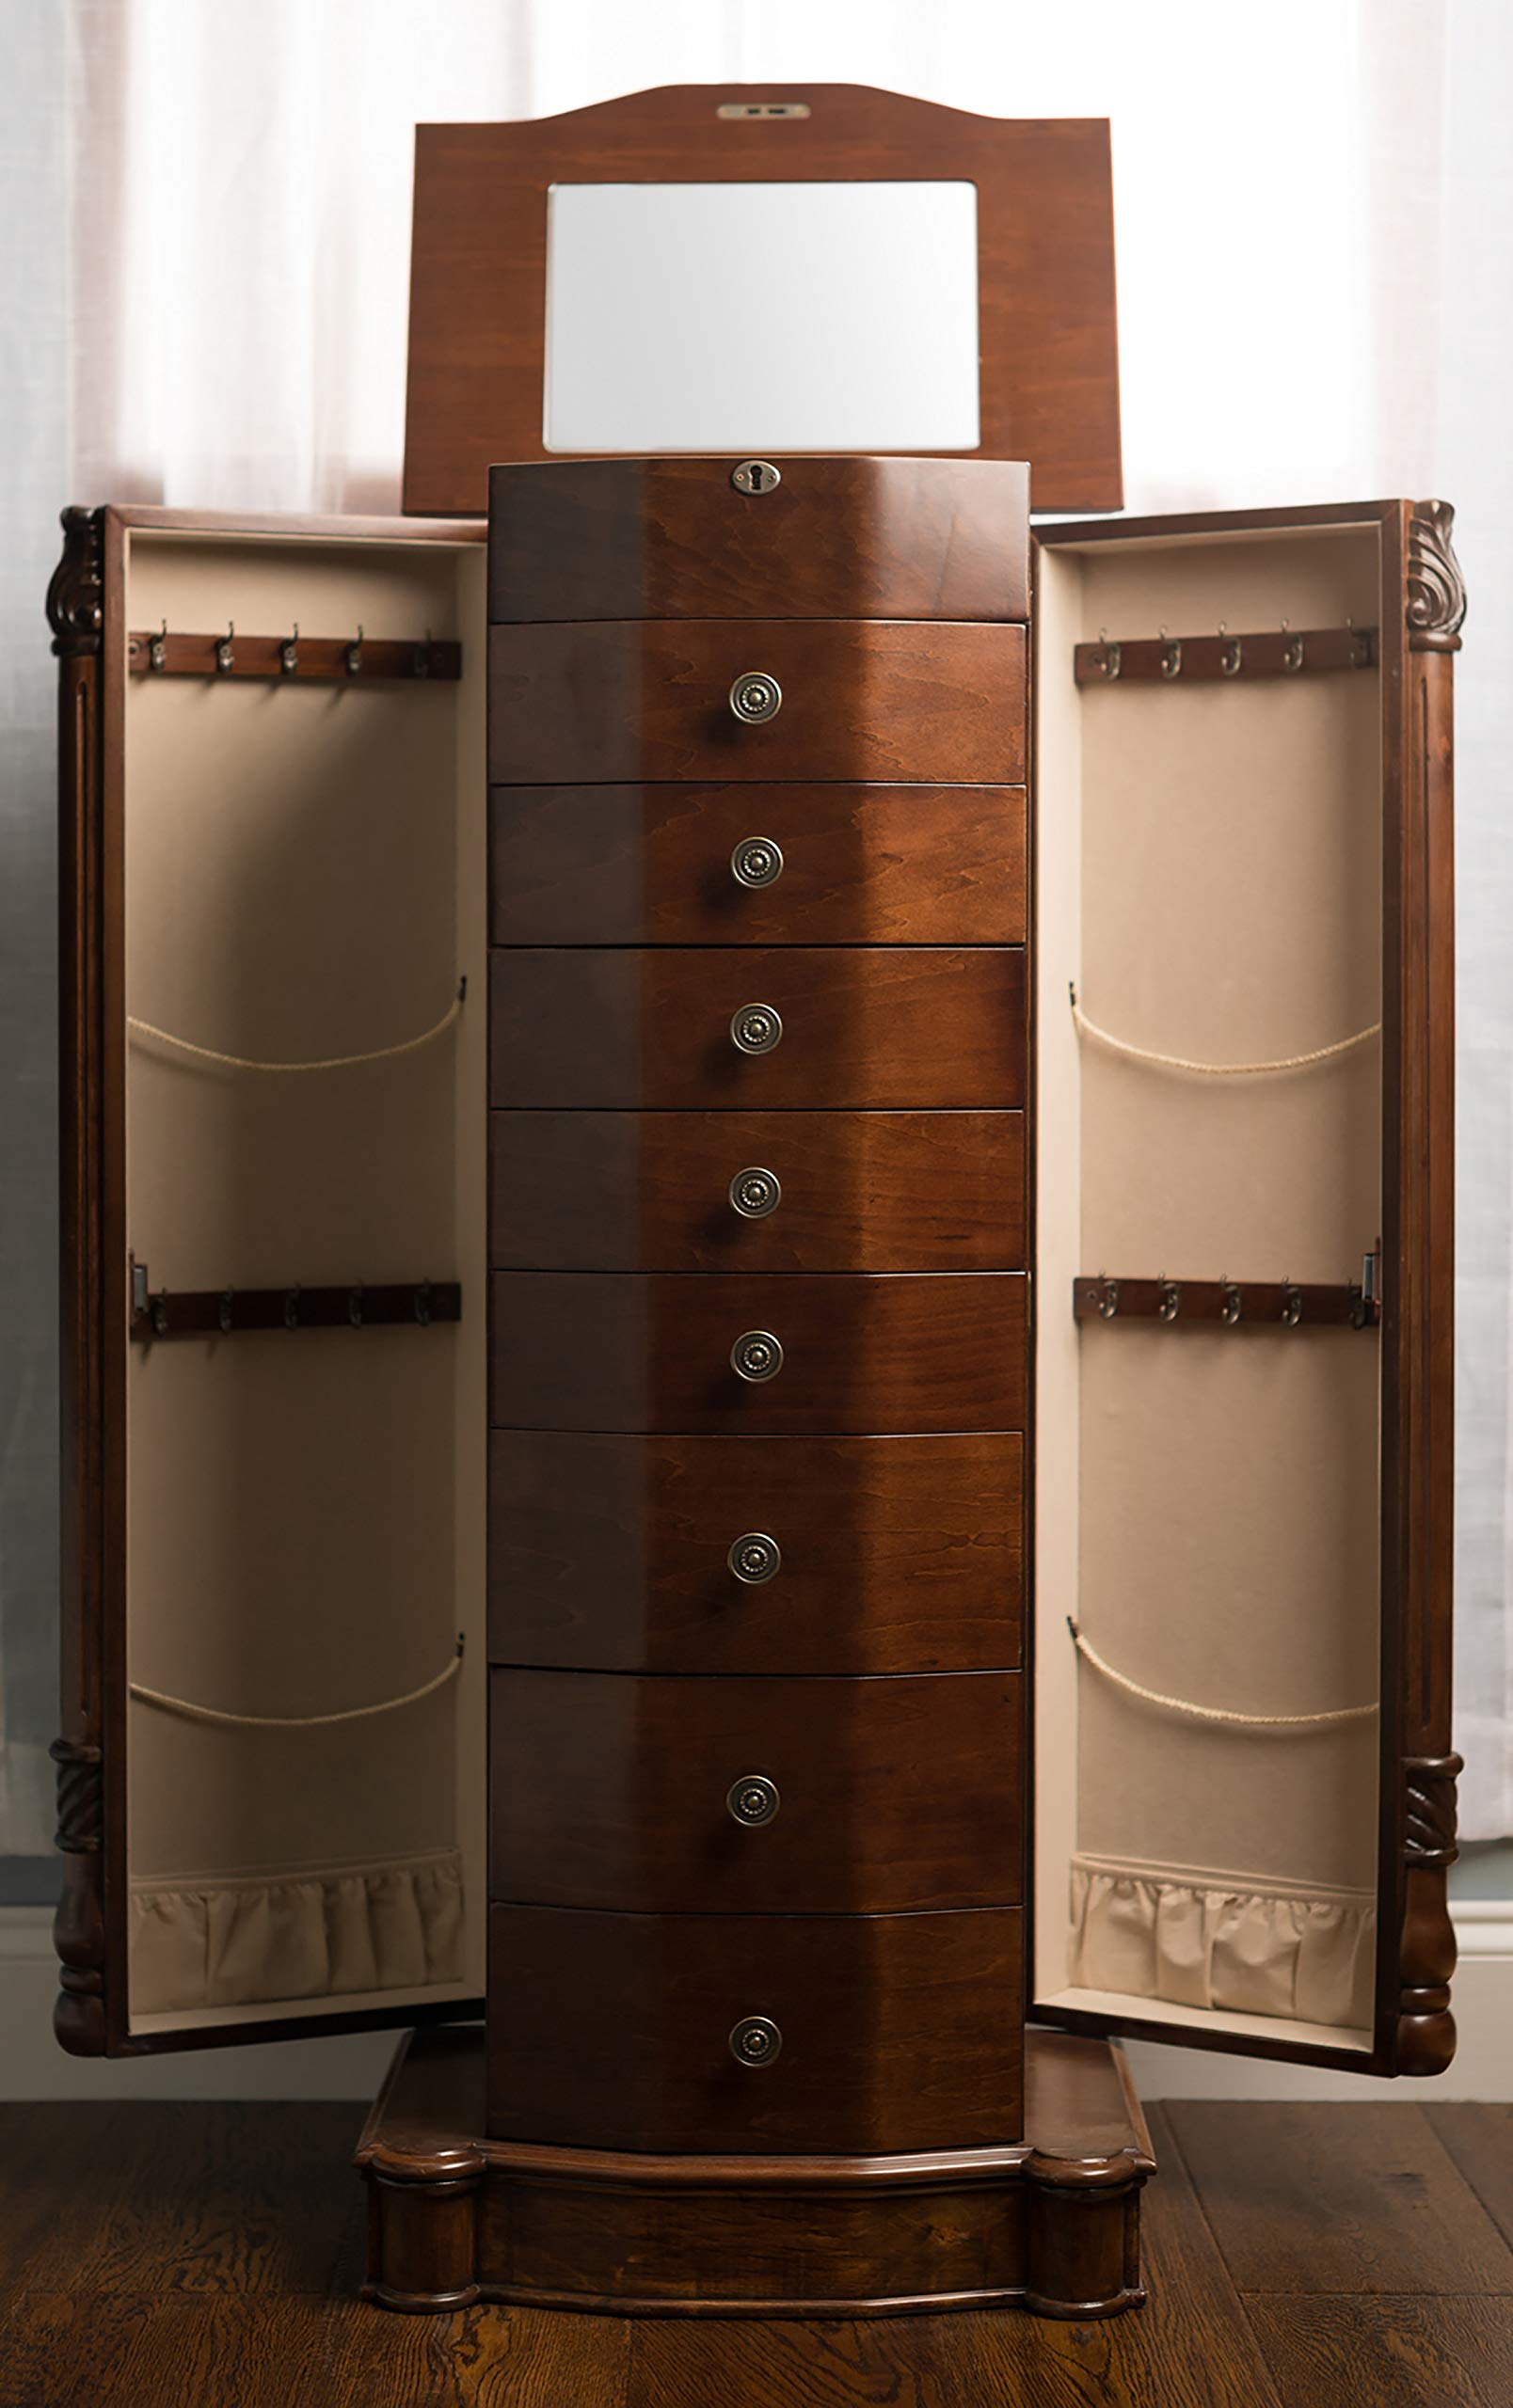 Hives and Honey 2417-654 Henry IV Jewelry Armoire, 39.75'' H x 17.25'' W x 11.6'' D, Walnut by Hives and Honey (Image #2)